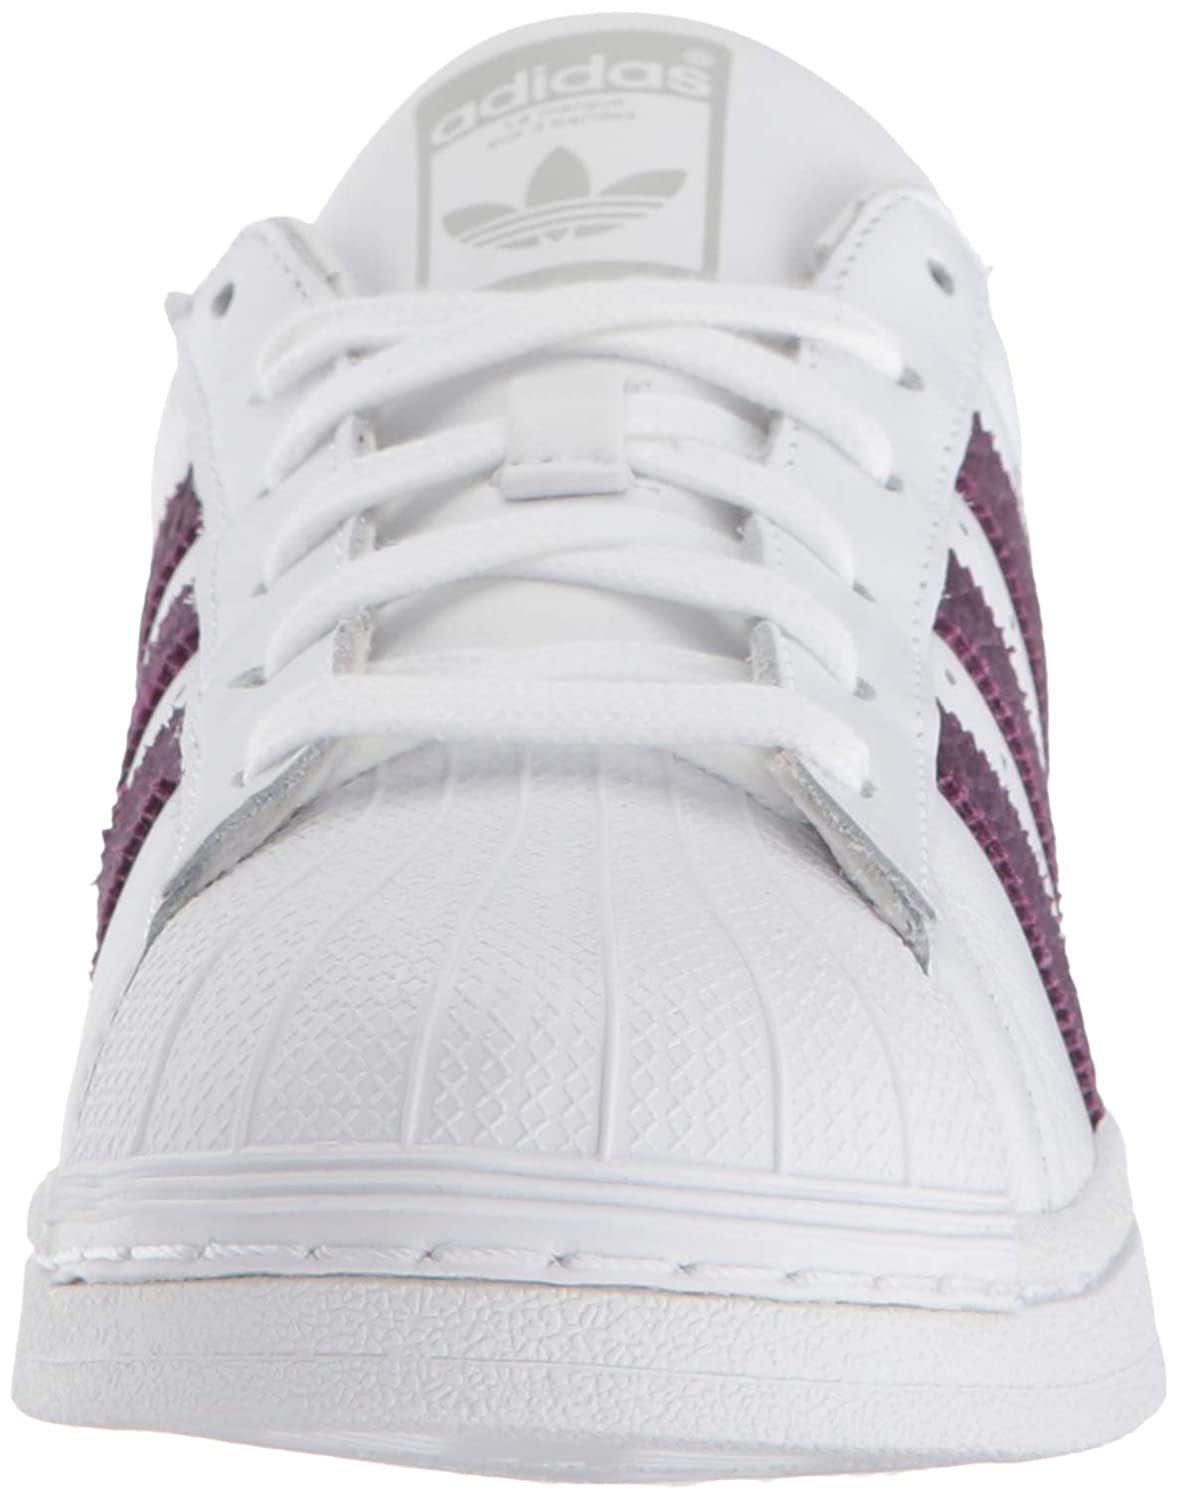 Adidas-Superstar-Women-039-s-Fashion-Casual-Sneakers-Athletic-Shoes-Originals thumbnail 33